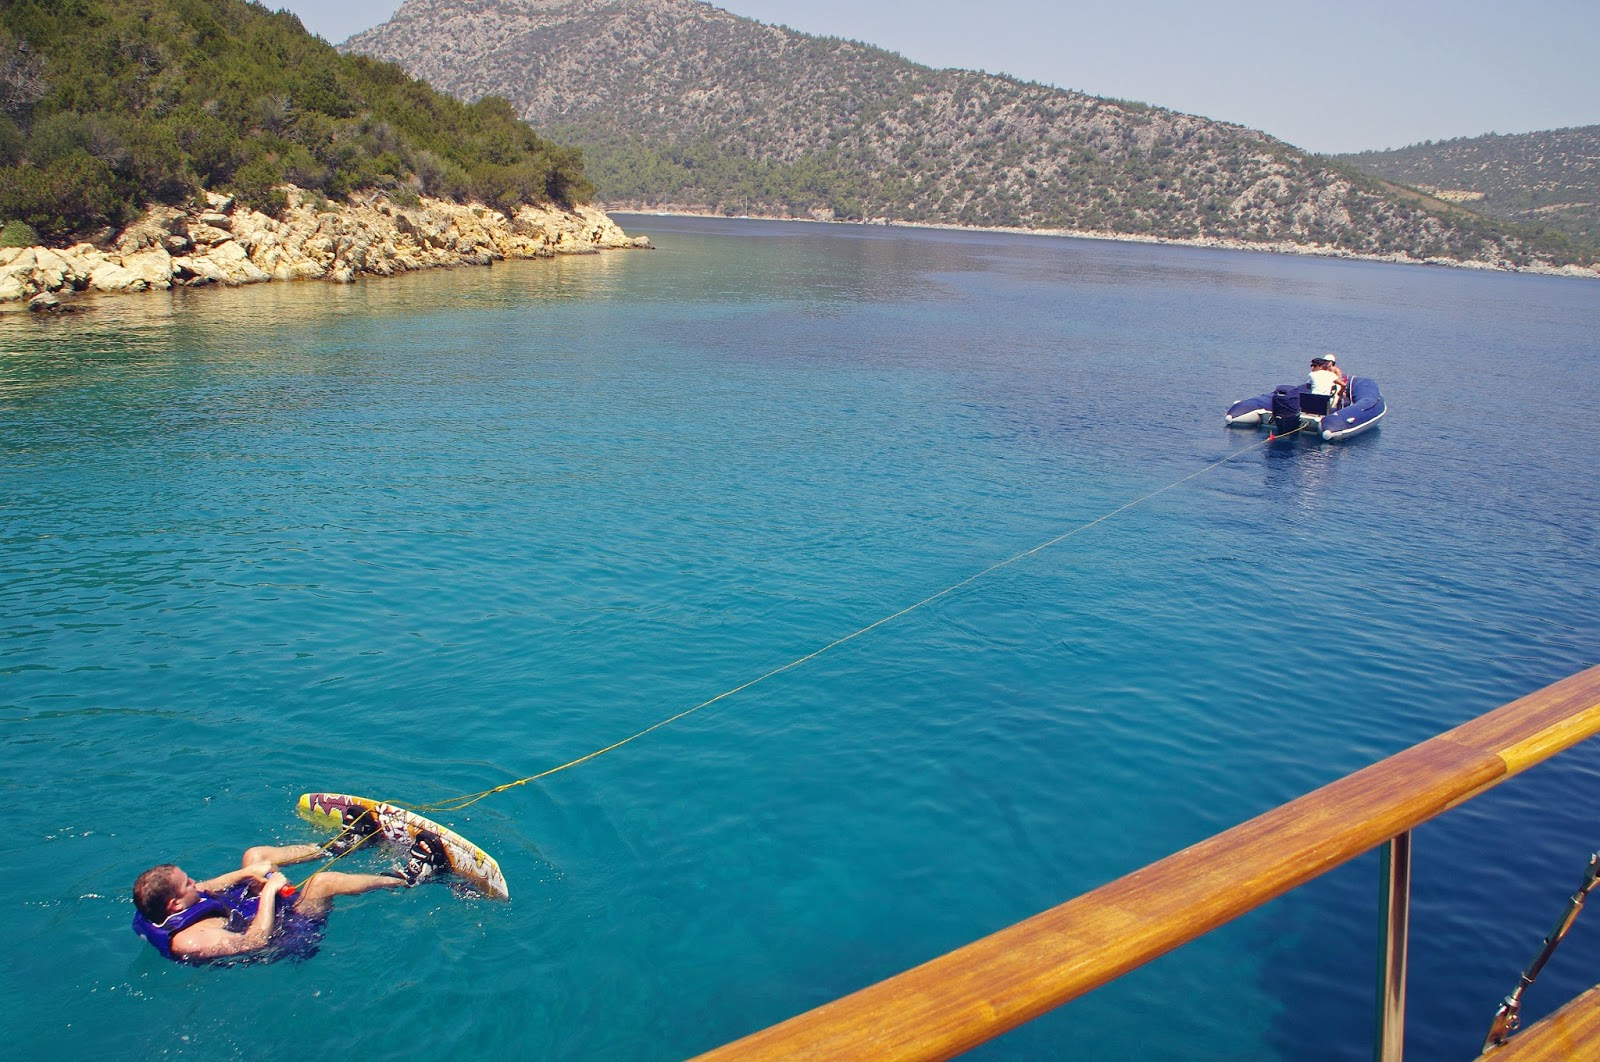 Wakeboarding in Turkey